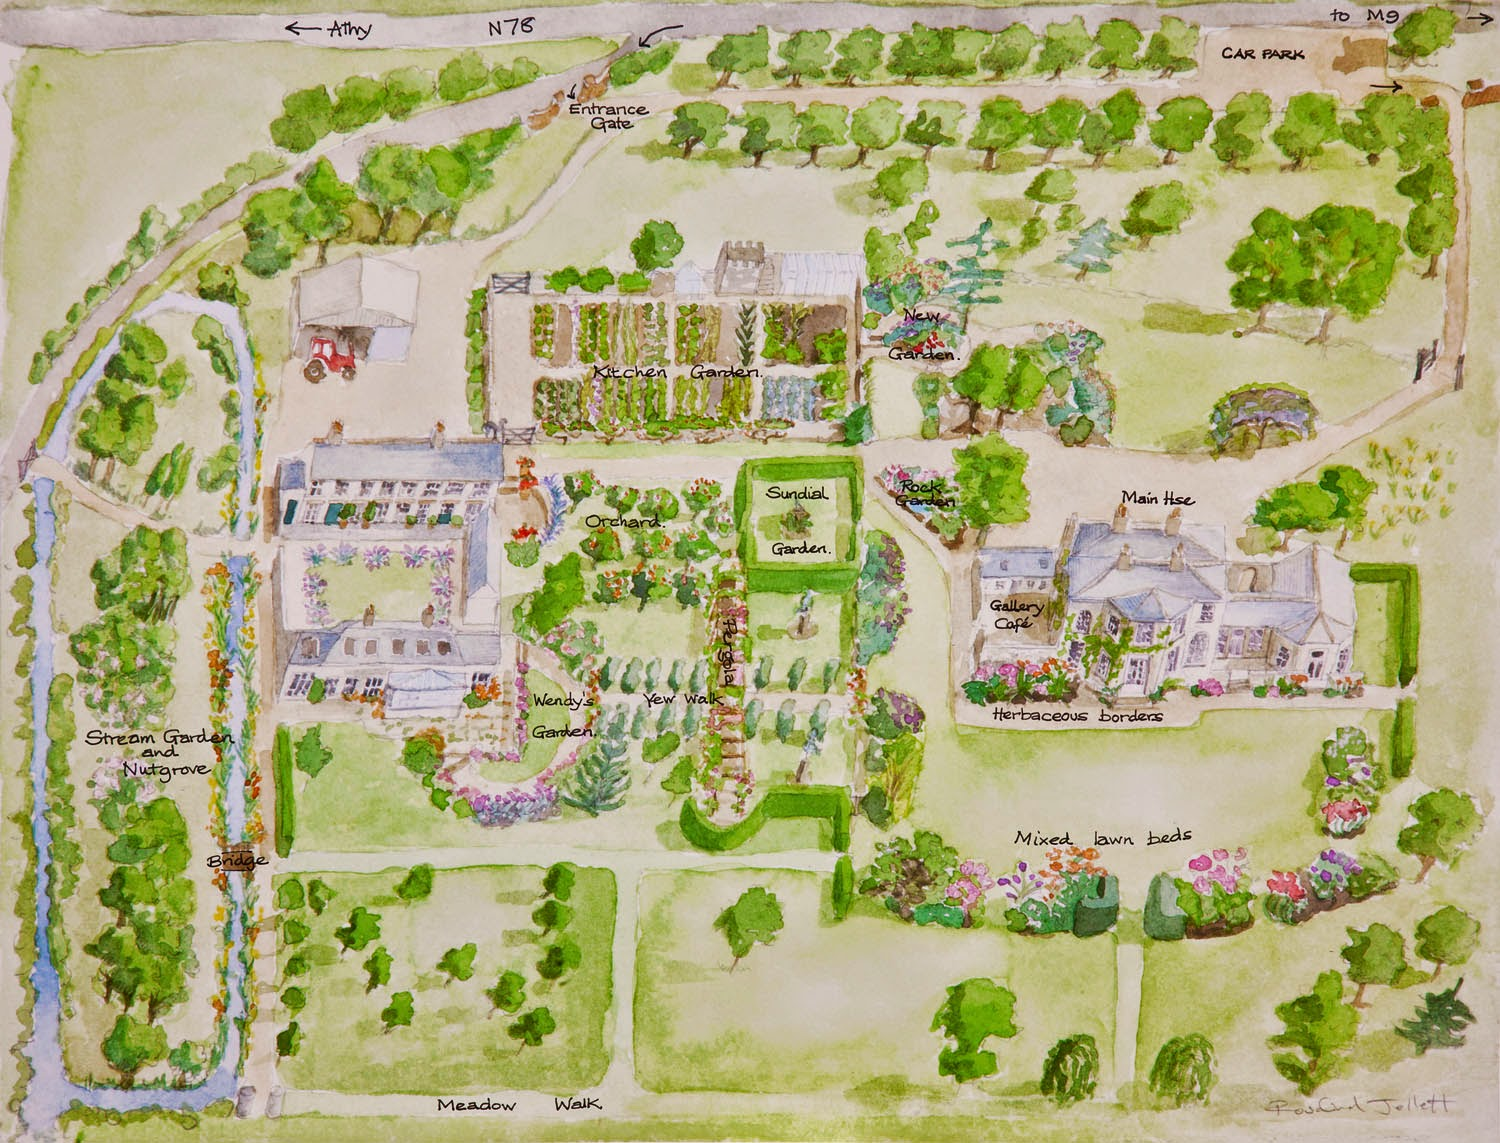 The beautifully illustrated map of Burtown House